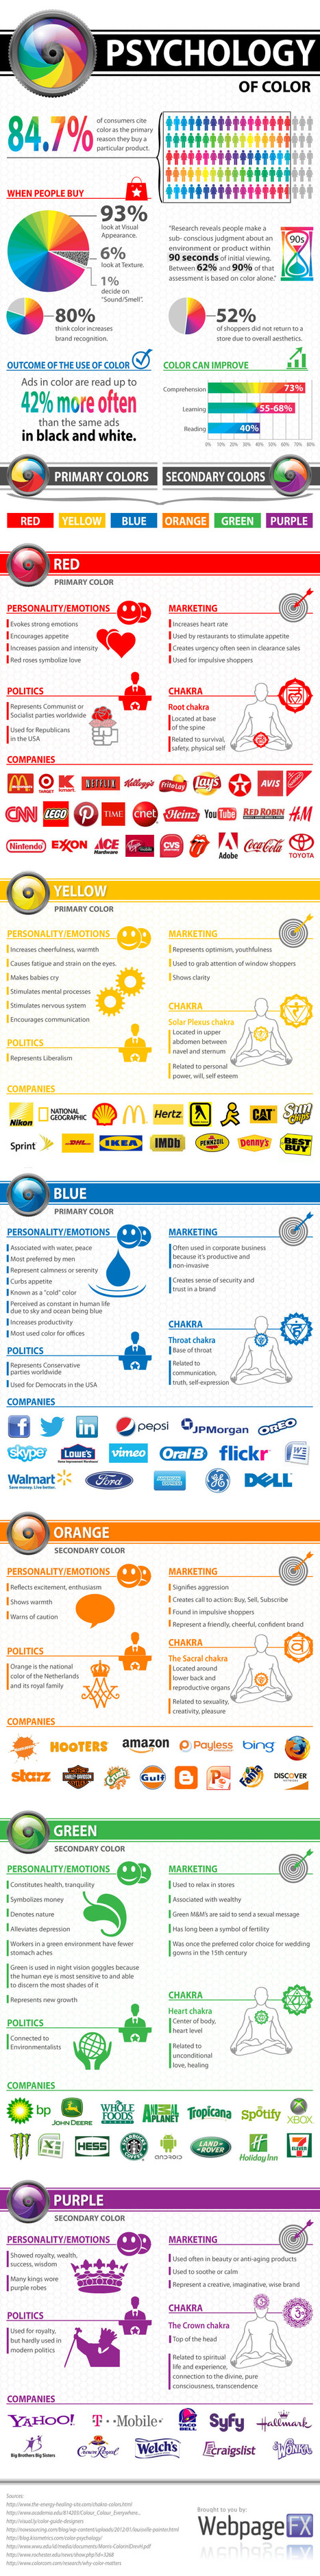 The Psychology of Color: How it Affects Buying Decisions [Infographic] | Life and Work | Scoop.it